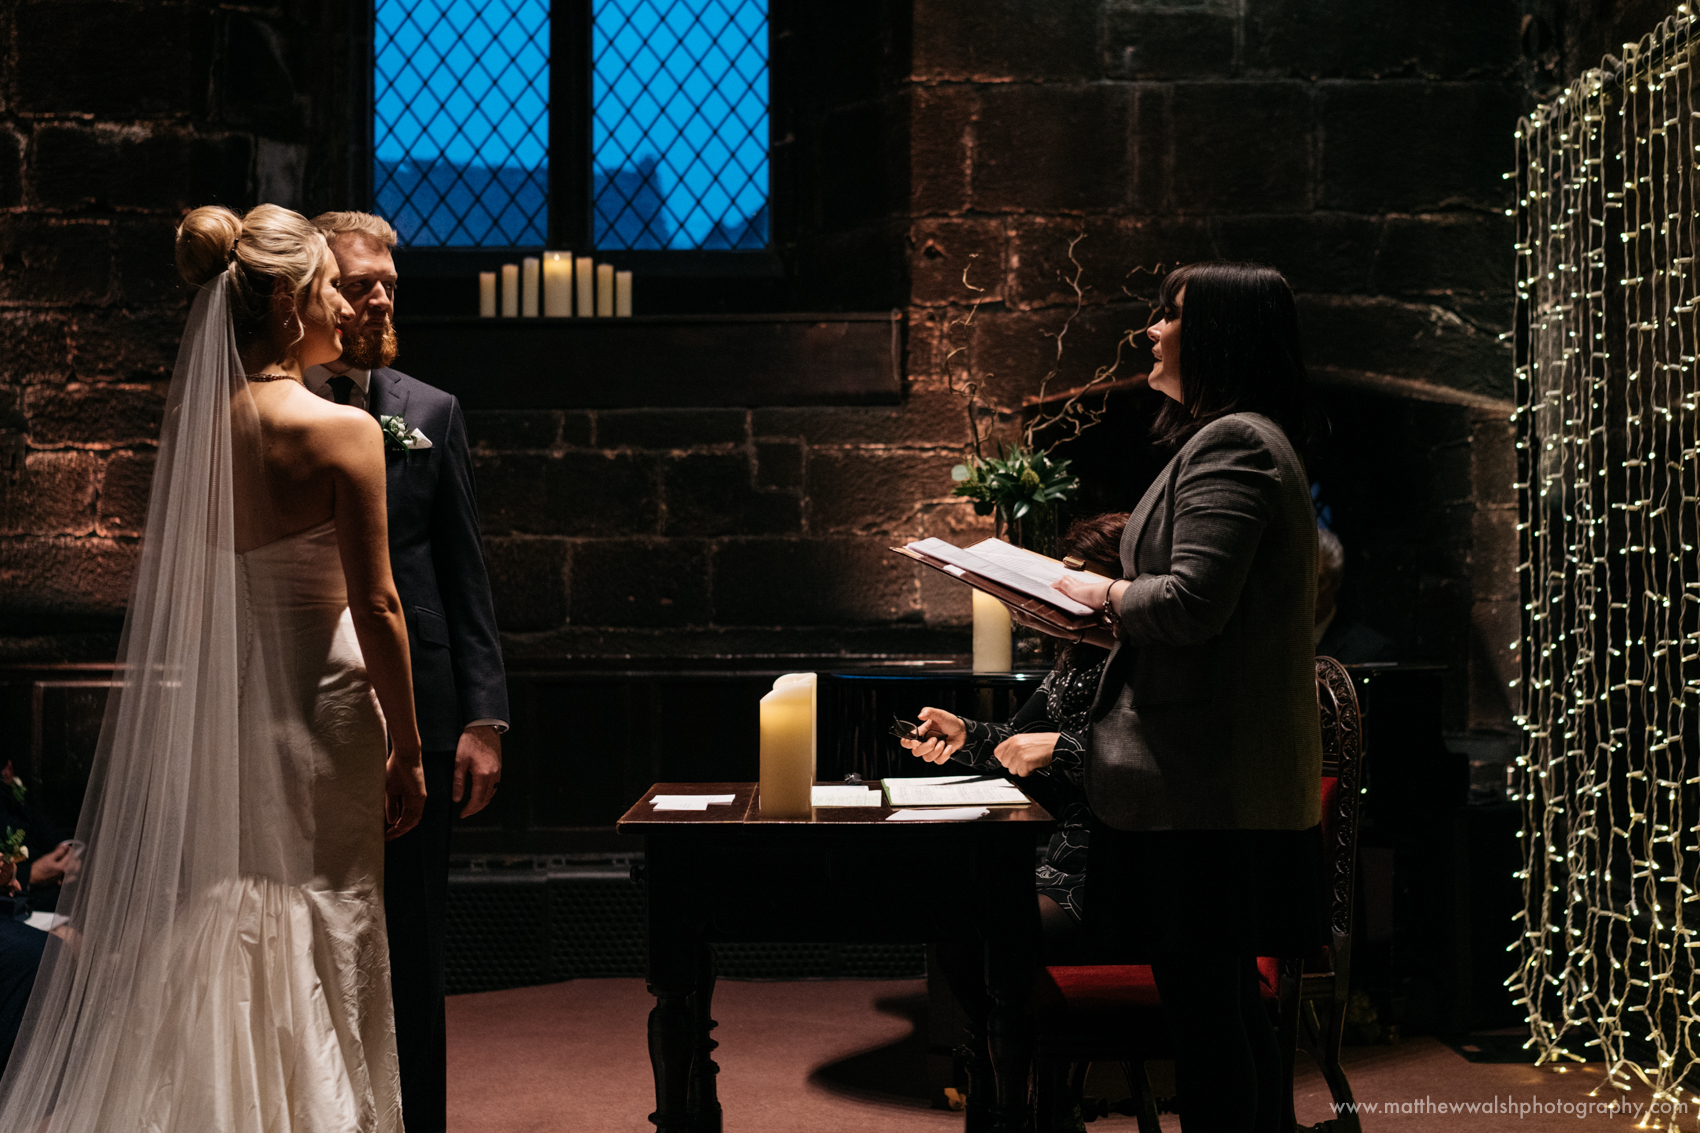 The final part of the the ceremony in the Baronial hall at Chetham's